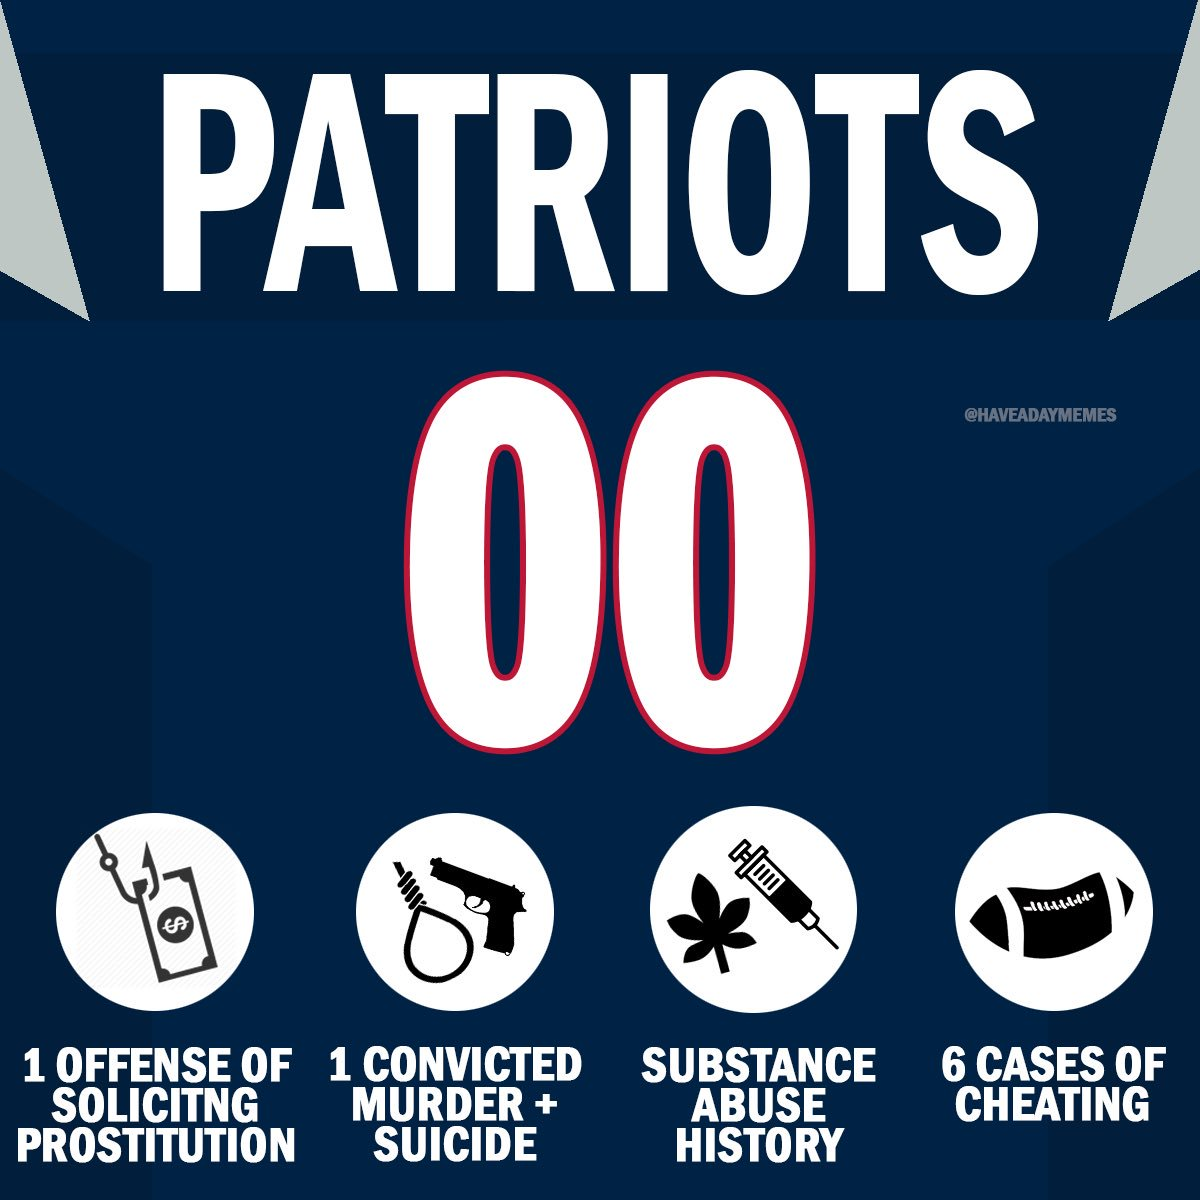 Now with Robert Kraft's arrest, you can consider the Patriots team complete! #HaveADay<br>http://pic.twitter.com/tC1eYEpgKZ